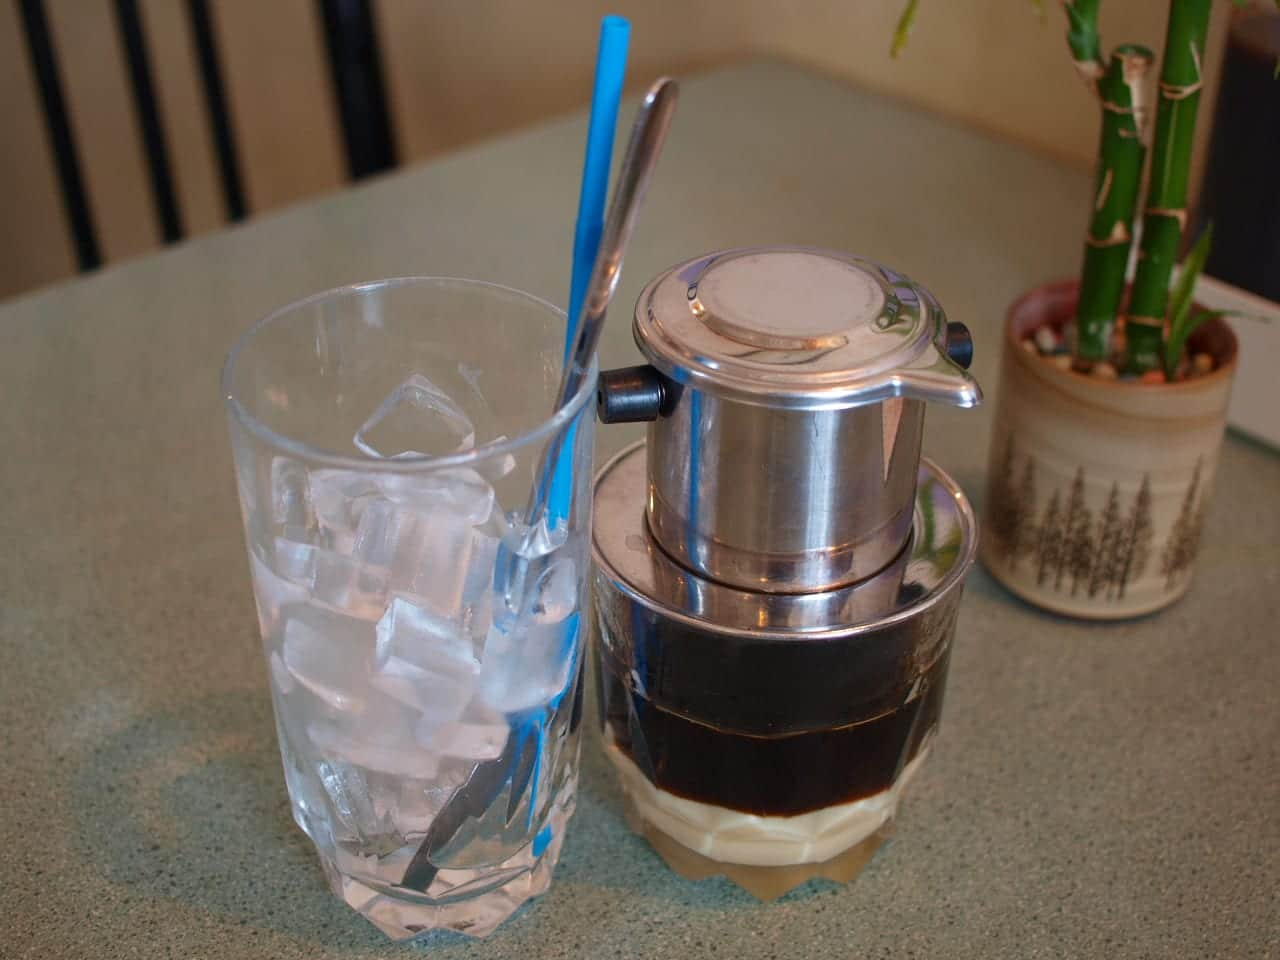 Chi Lan Calgary Vietnamese Restaurant Iced Coffee with milk